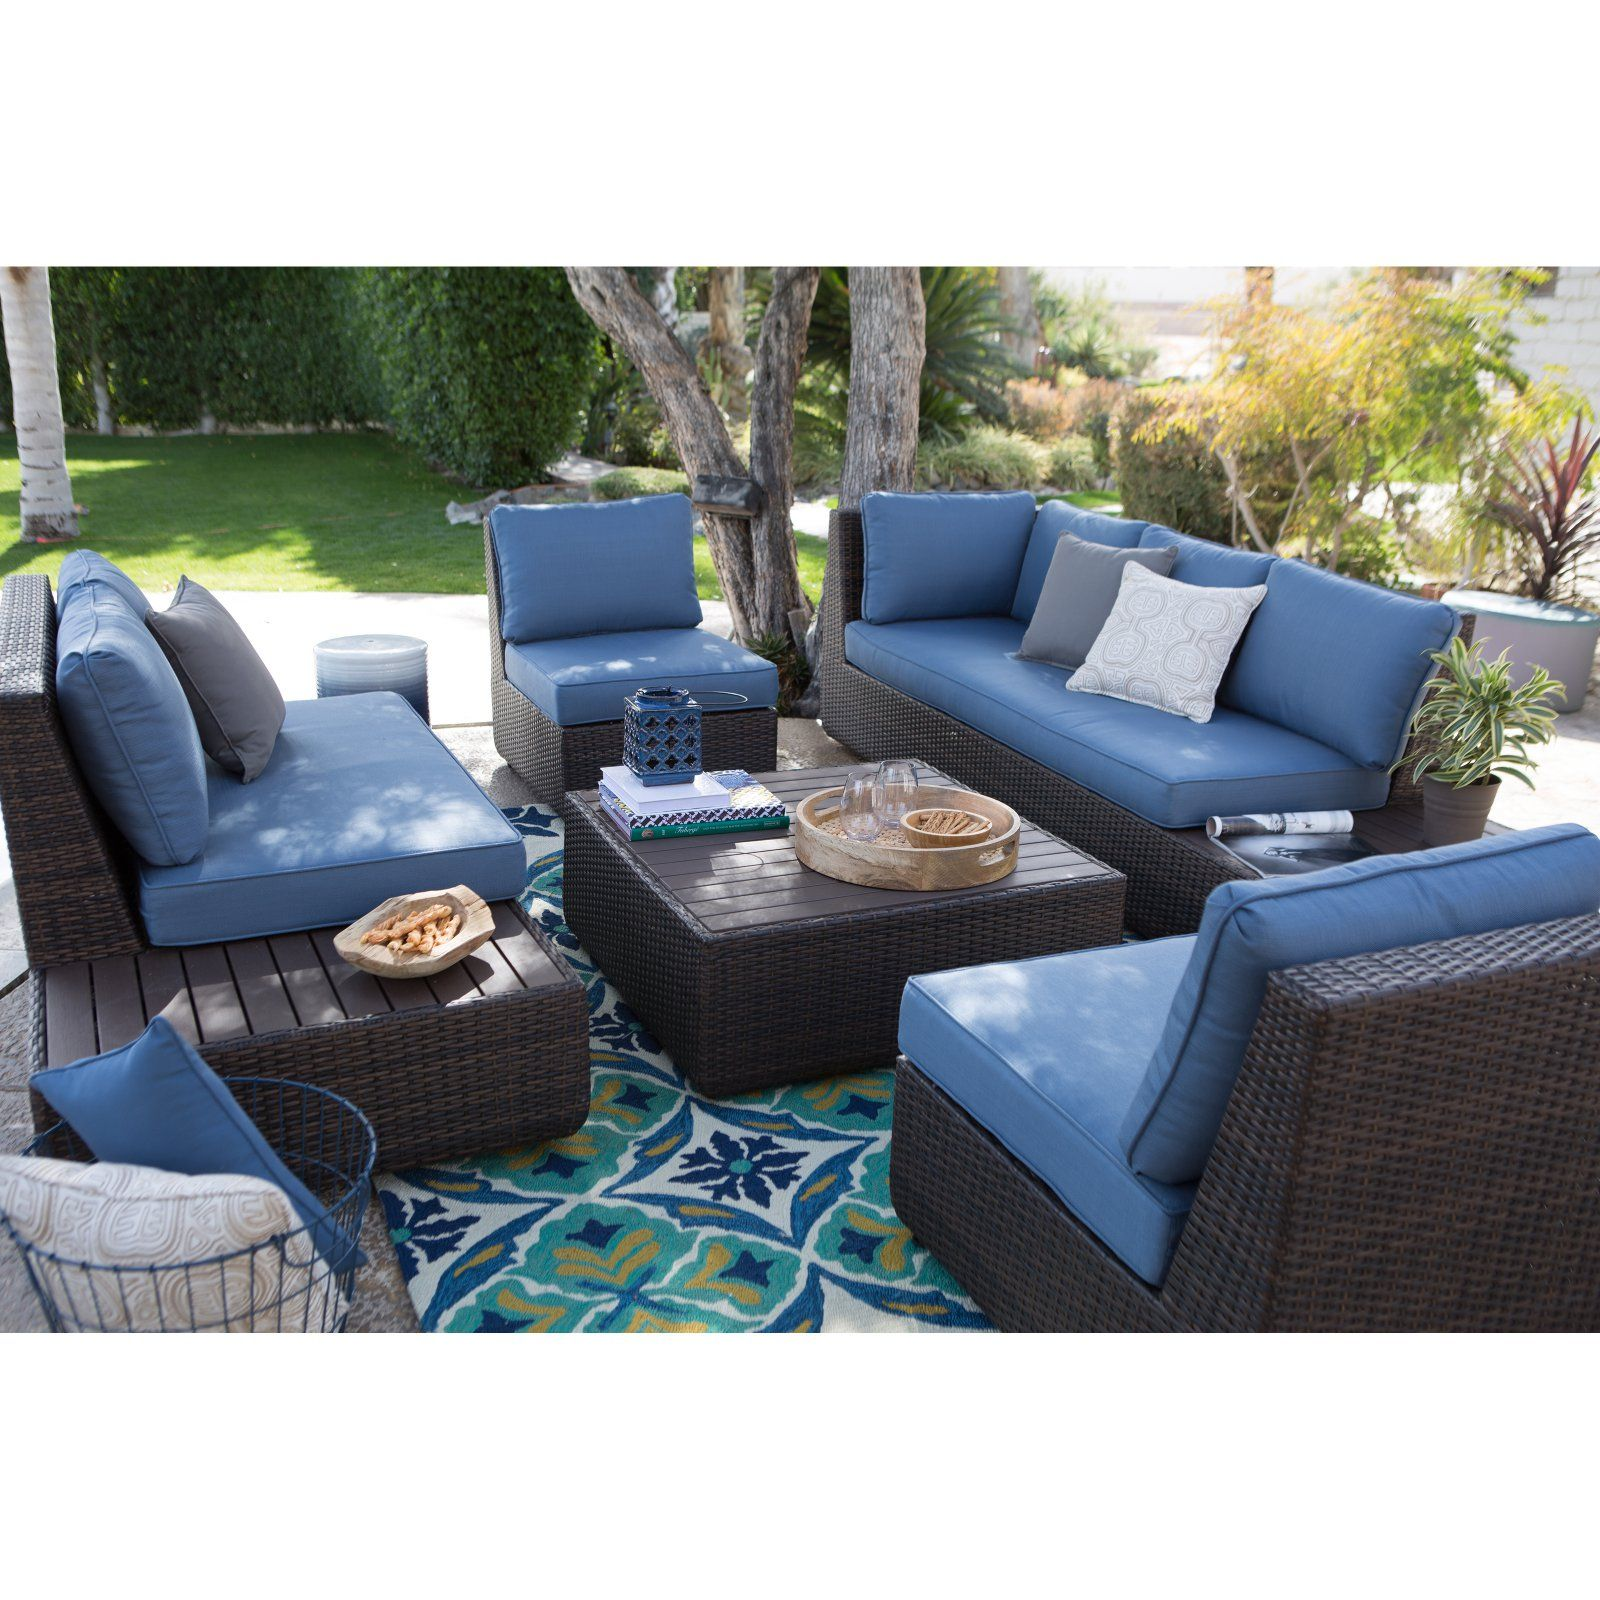 Outdoor Belham Living Luciana Bay All Weather Wicker Deep ... on Living Spaces Outdoor Sectional id=15130